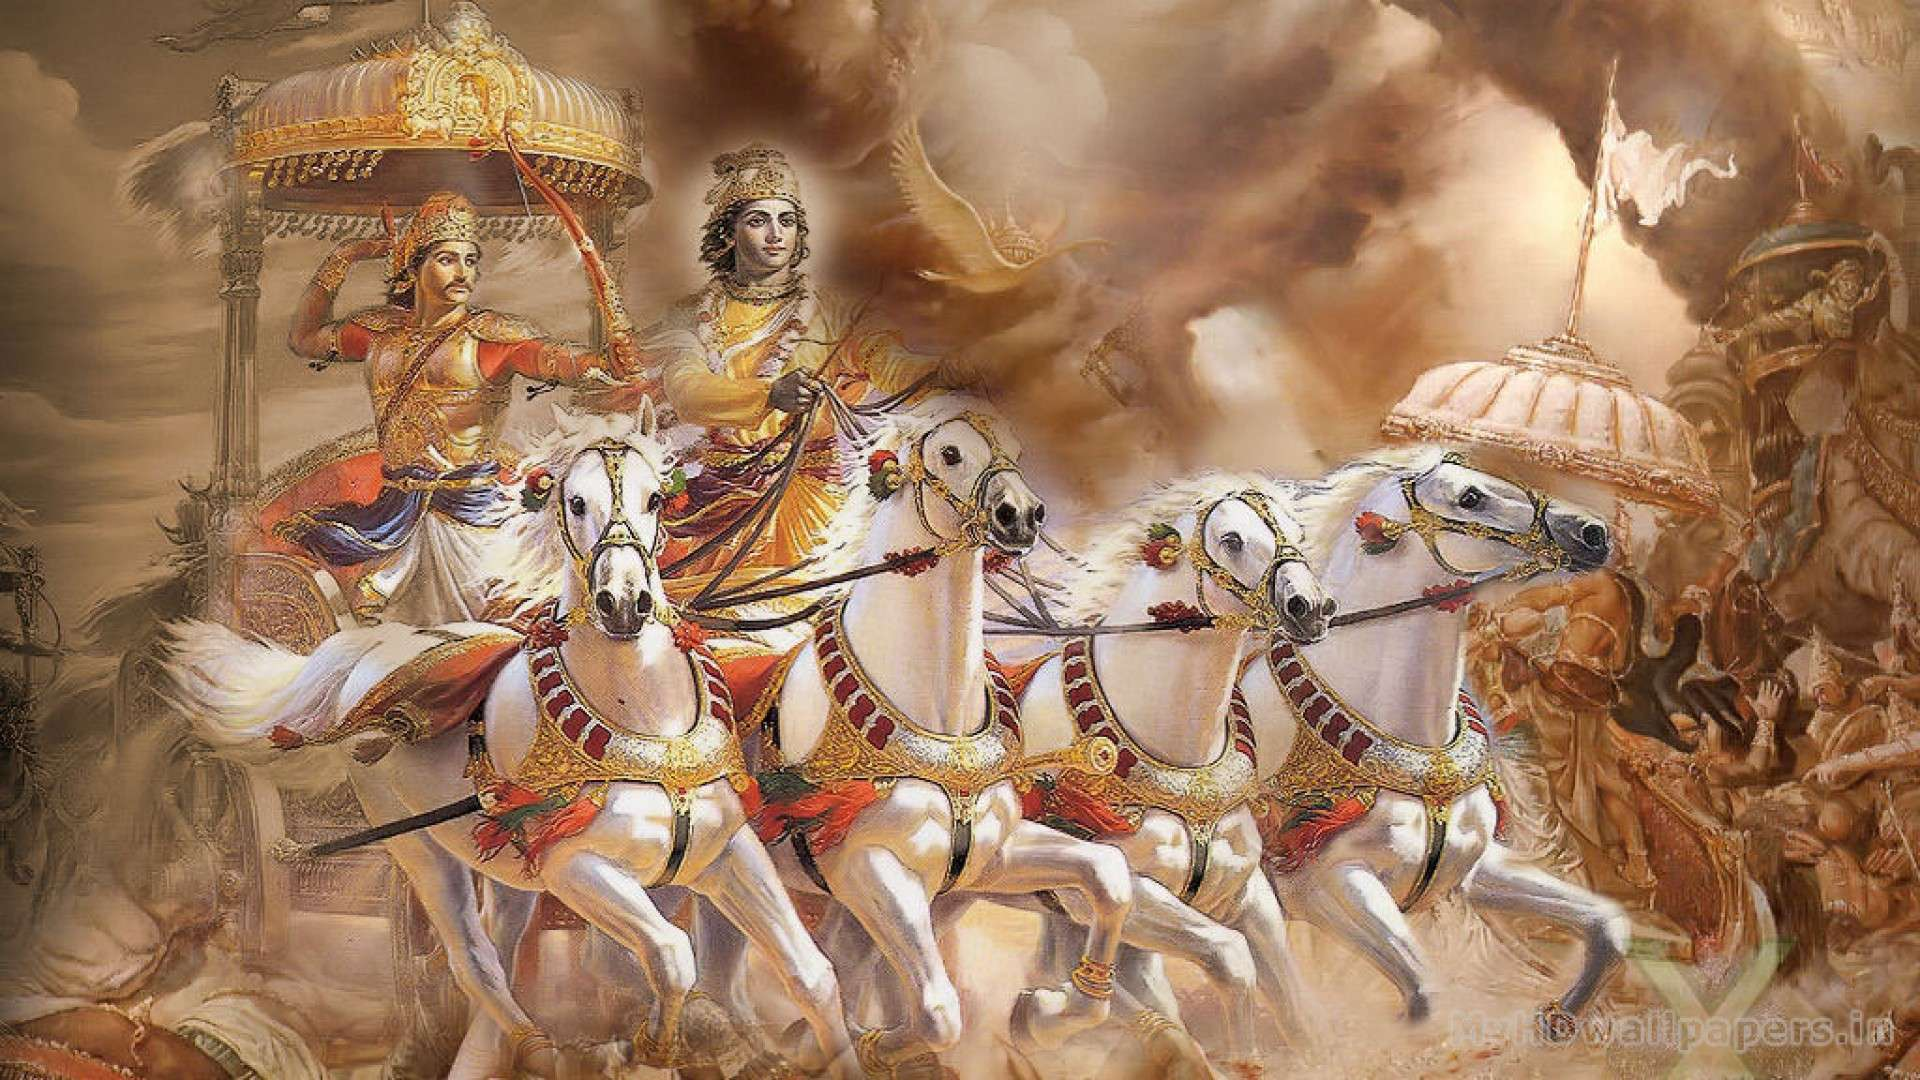 dharma in mahabharata The way of dharma in the ramayana dr prema panduranga, madras discourse at ram naam aradhana, rikhia, december 1996 by the grace of the lord we will look into the highlights of the valmiki ramayana, concentrating in particular on the sundarakand.